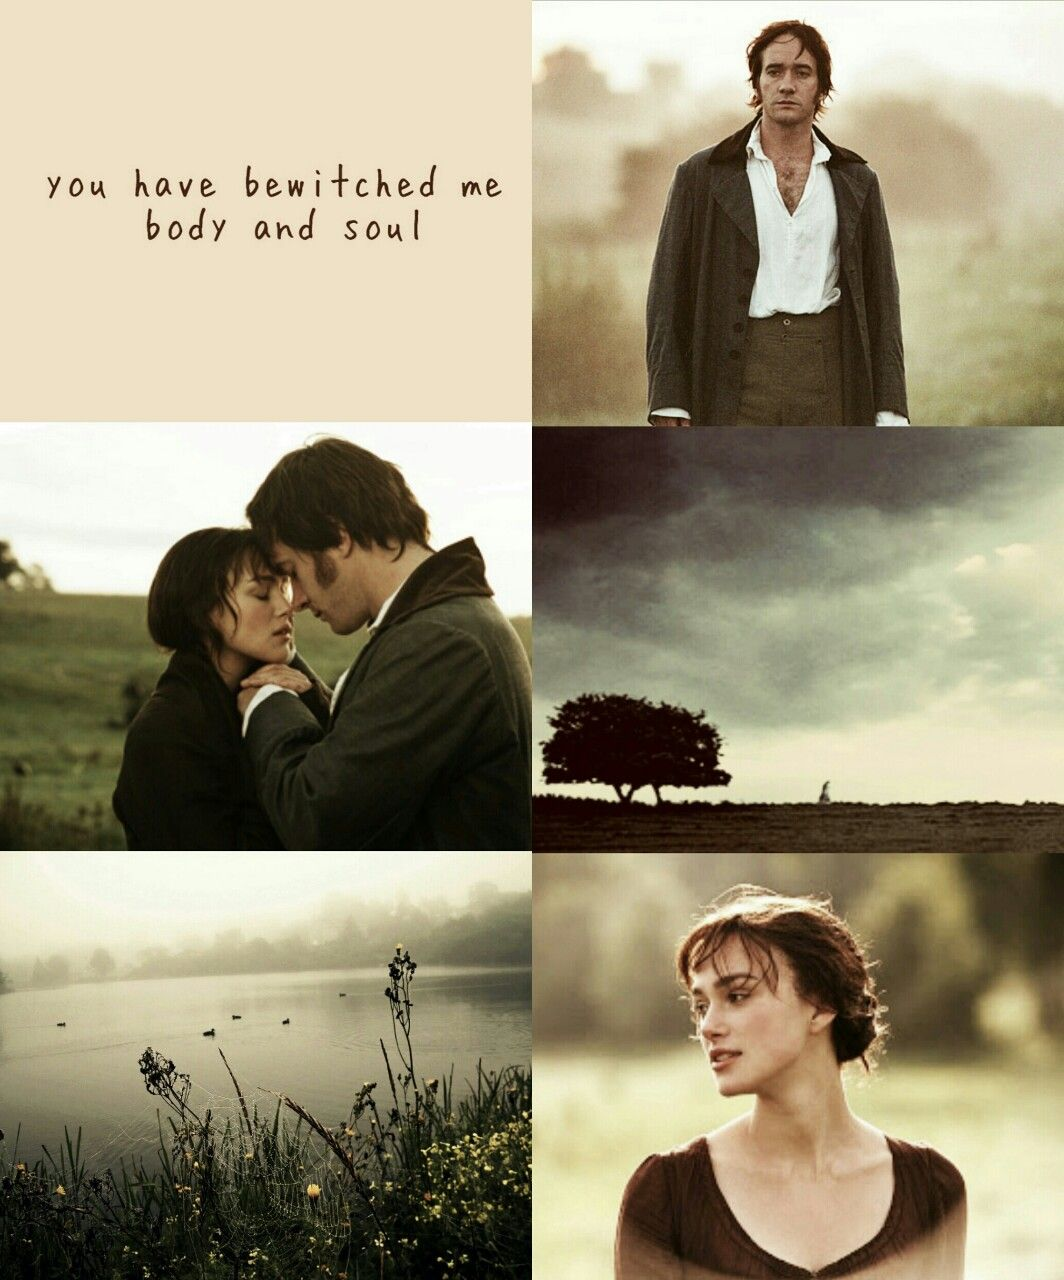 """northernwolfspirit: """" """"(…) I never wish to be parted from you from this day on."""" • Period Drama Couples aesthetic [3/?]: Elizabeth Bennet and Fitzwillian Darcy from Pride and Prejudice (2005) """" #prideandprejudice"""